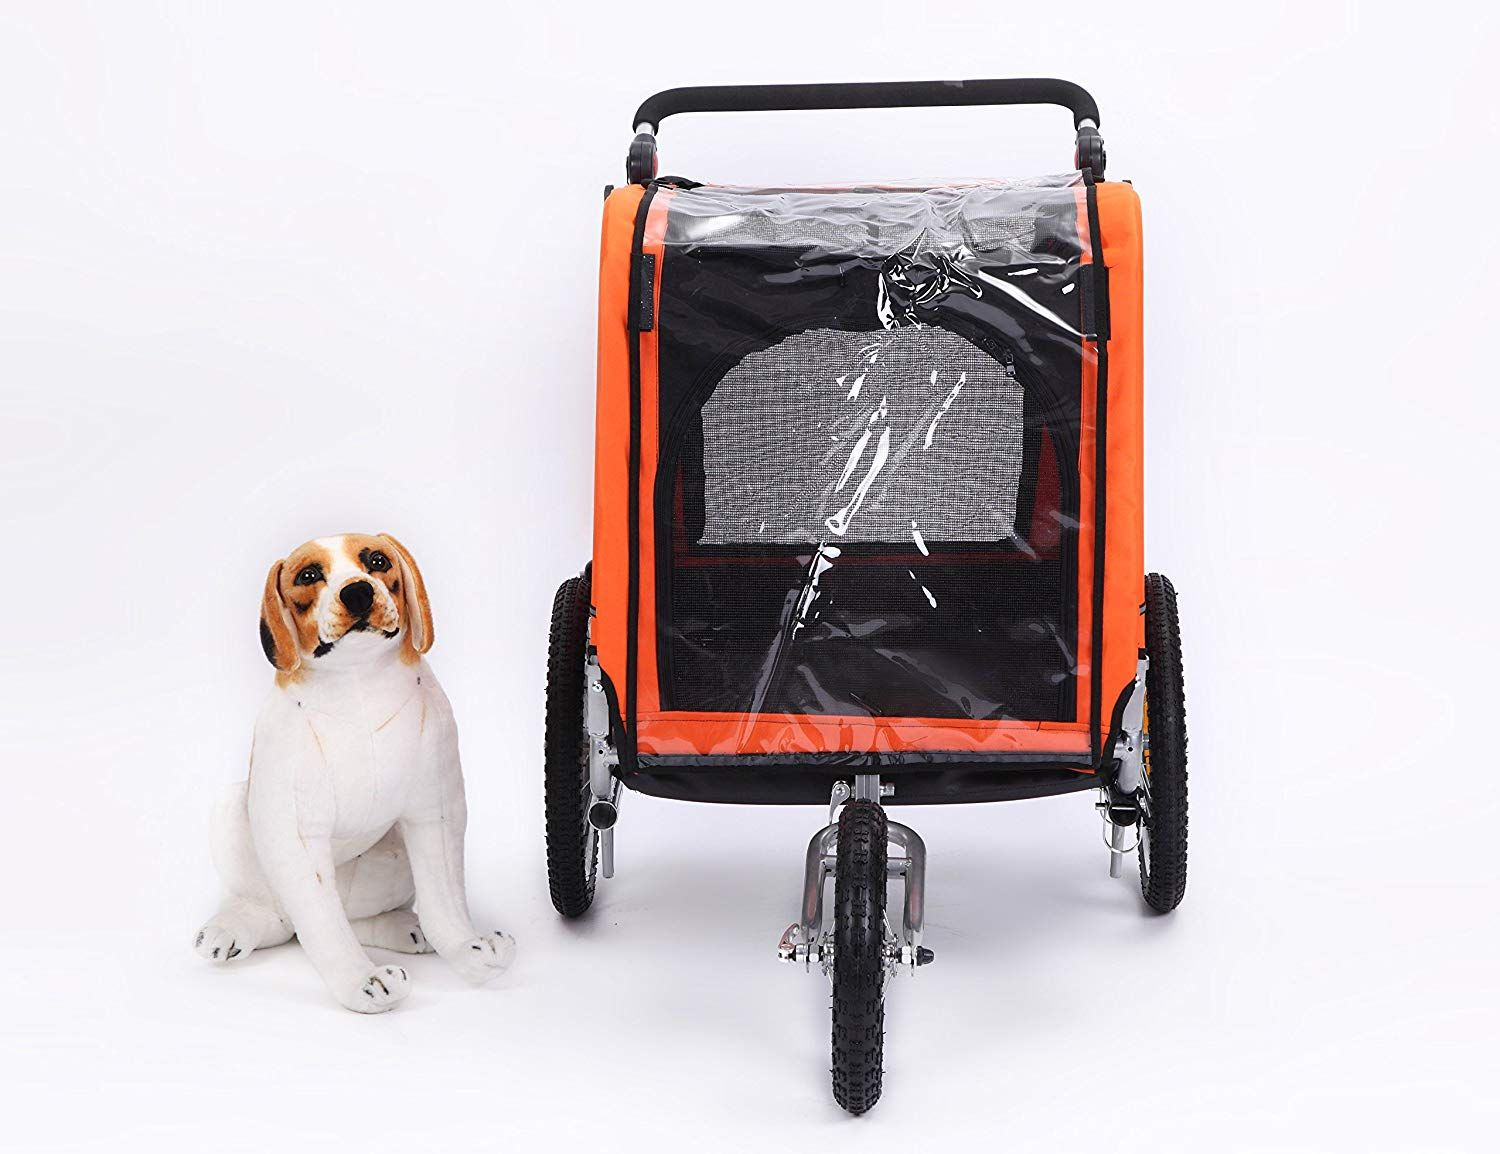 Sepnine 3 in 1 Luxury Large Sized Bike Trailer Bicycle Pet